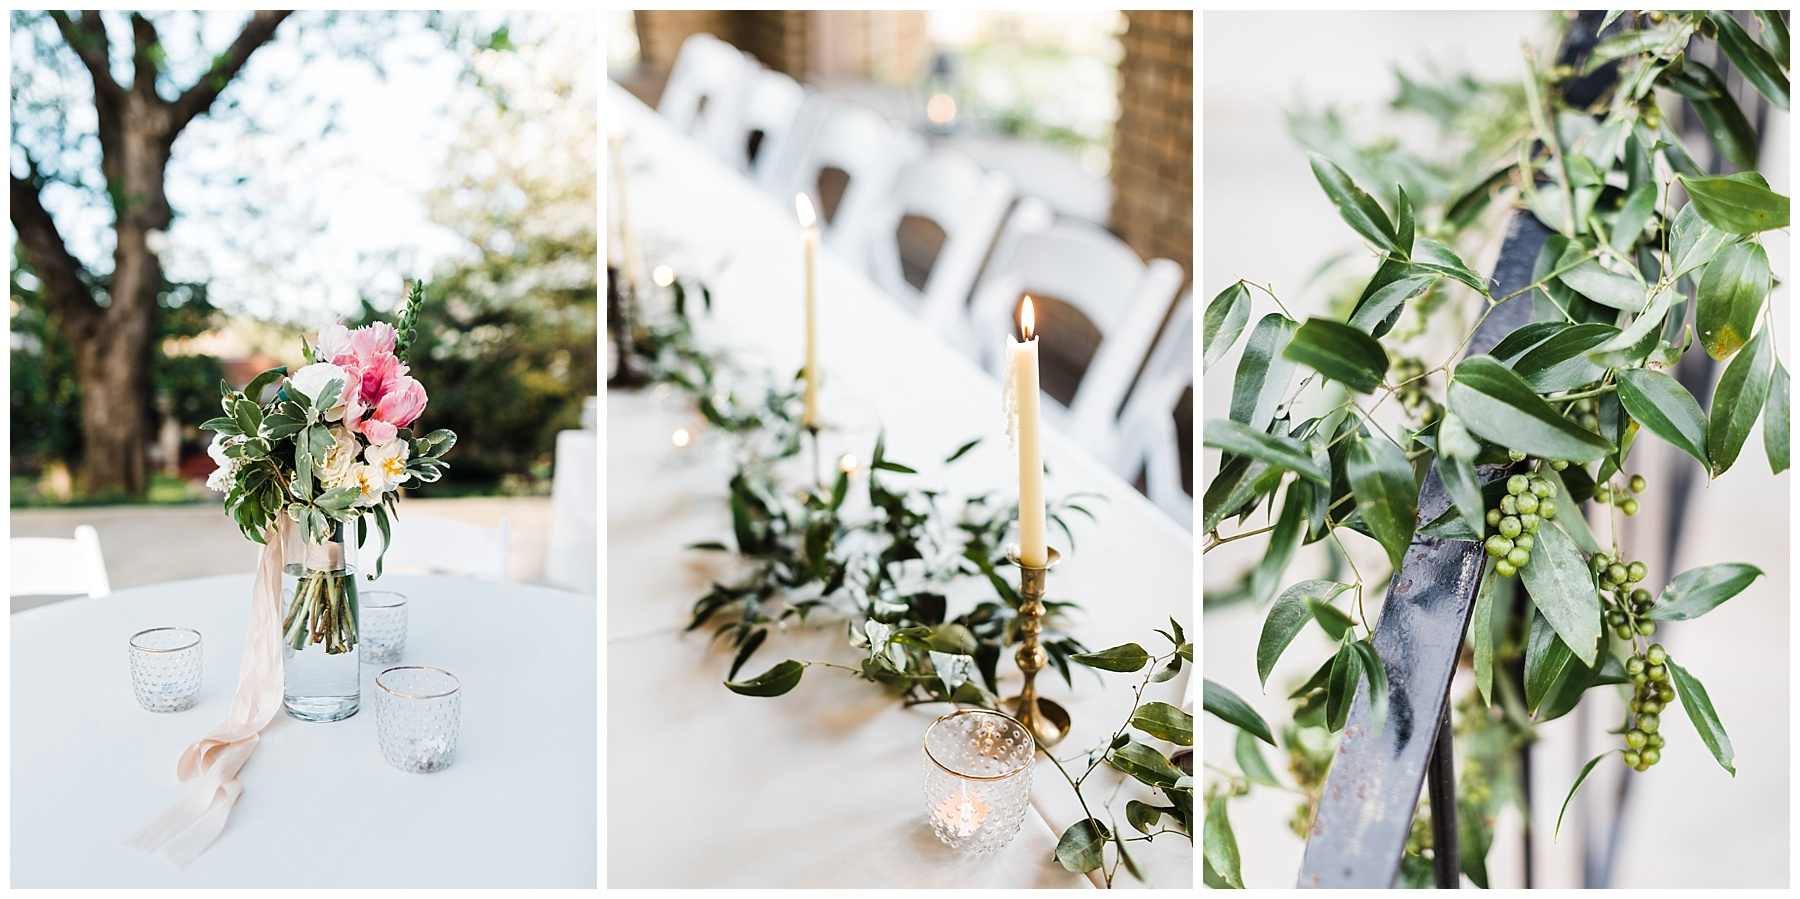 2018-02-27_0007 LeeAnne & William: A Birmingham wedding full of Southern Hospitality Blog Invision Events Weddings    invision_events, birmingham_al, auburn_al, alabama, atlanta_ga, atl, georgia, wedding_planner, wedding_designer, weddings, photography, wedding_planning